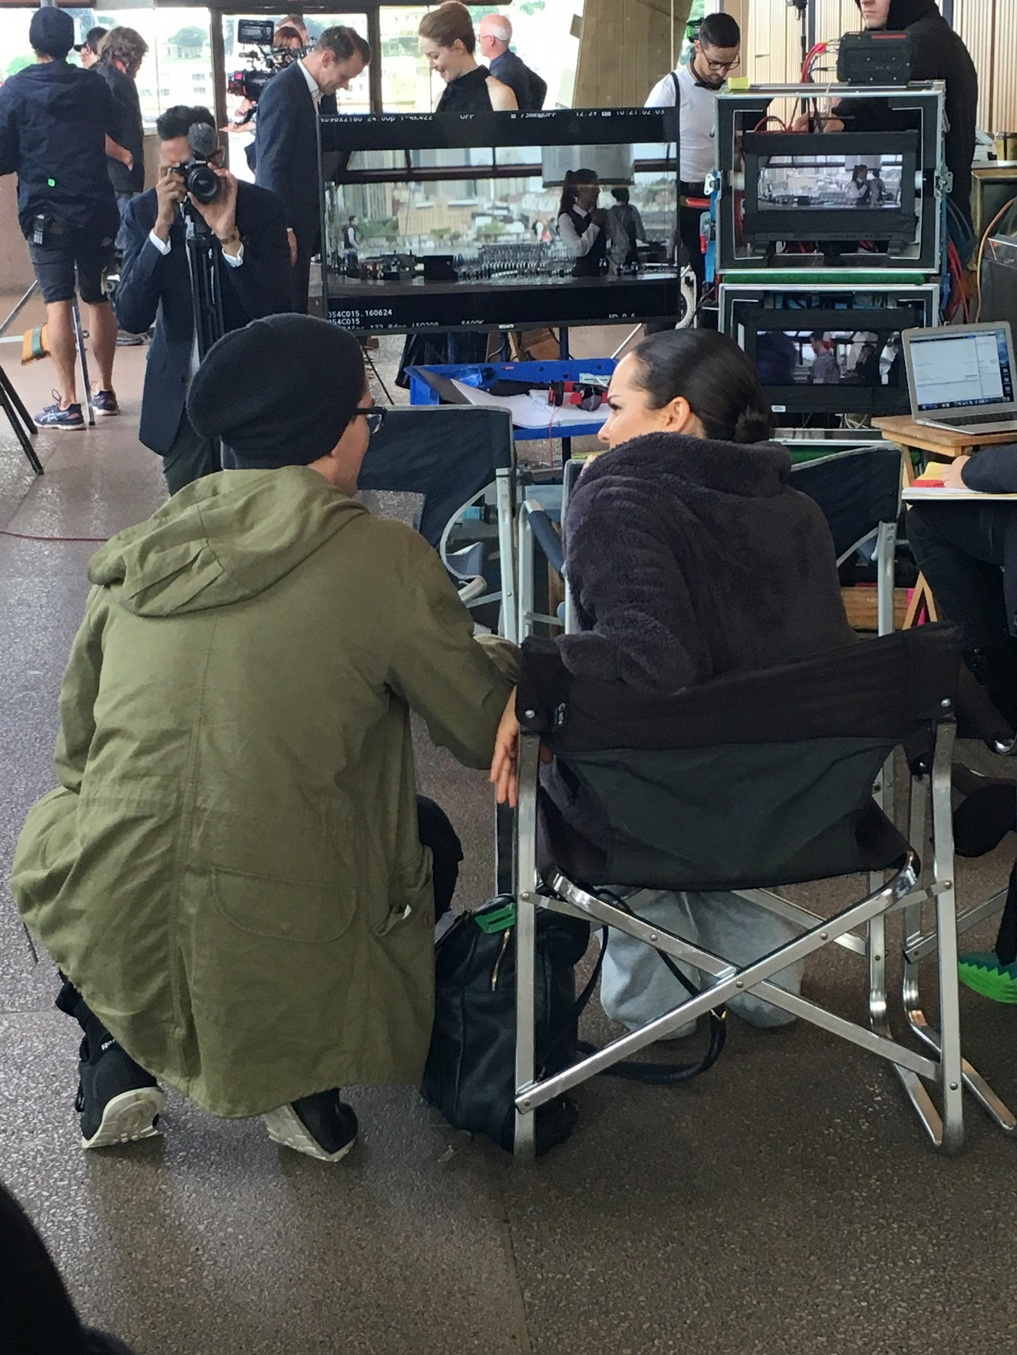 On set: Filming Dance Academy in Sydney